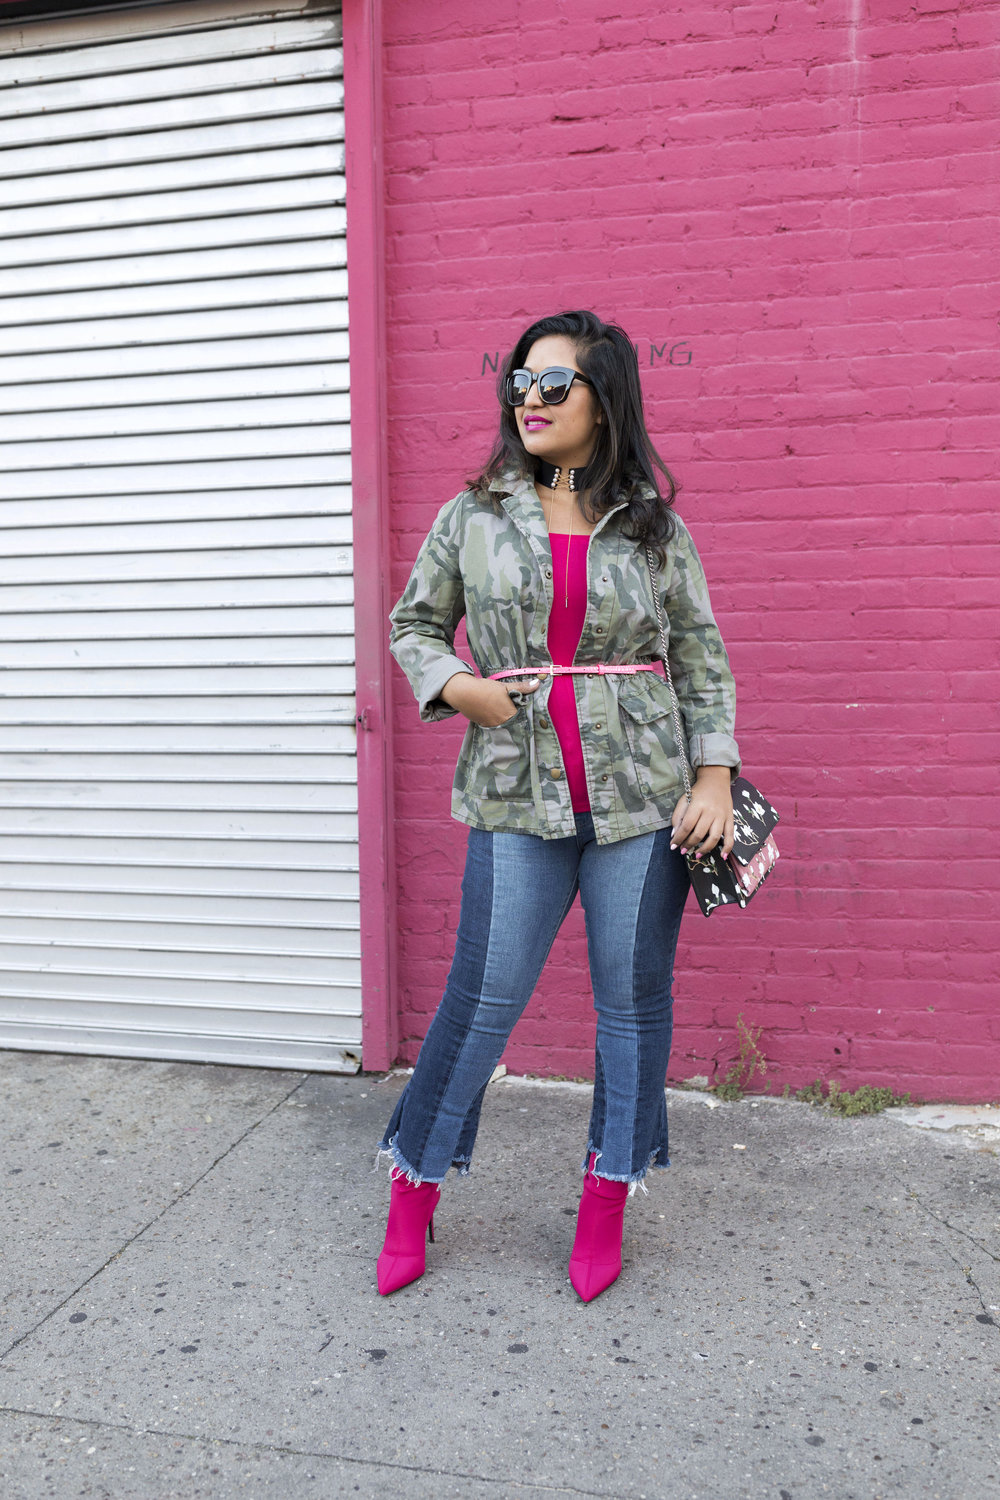 Krity S x Pink Sock Boots x Casual Look 1.jpg